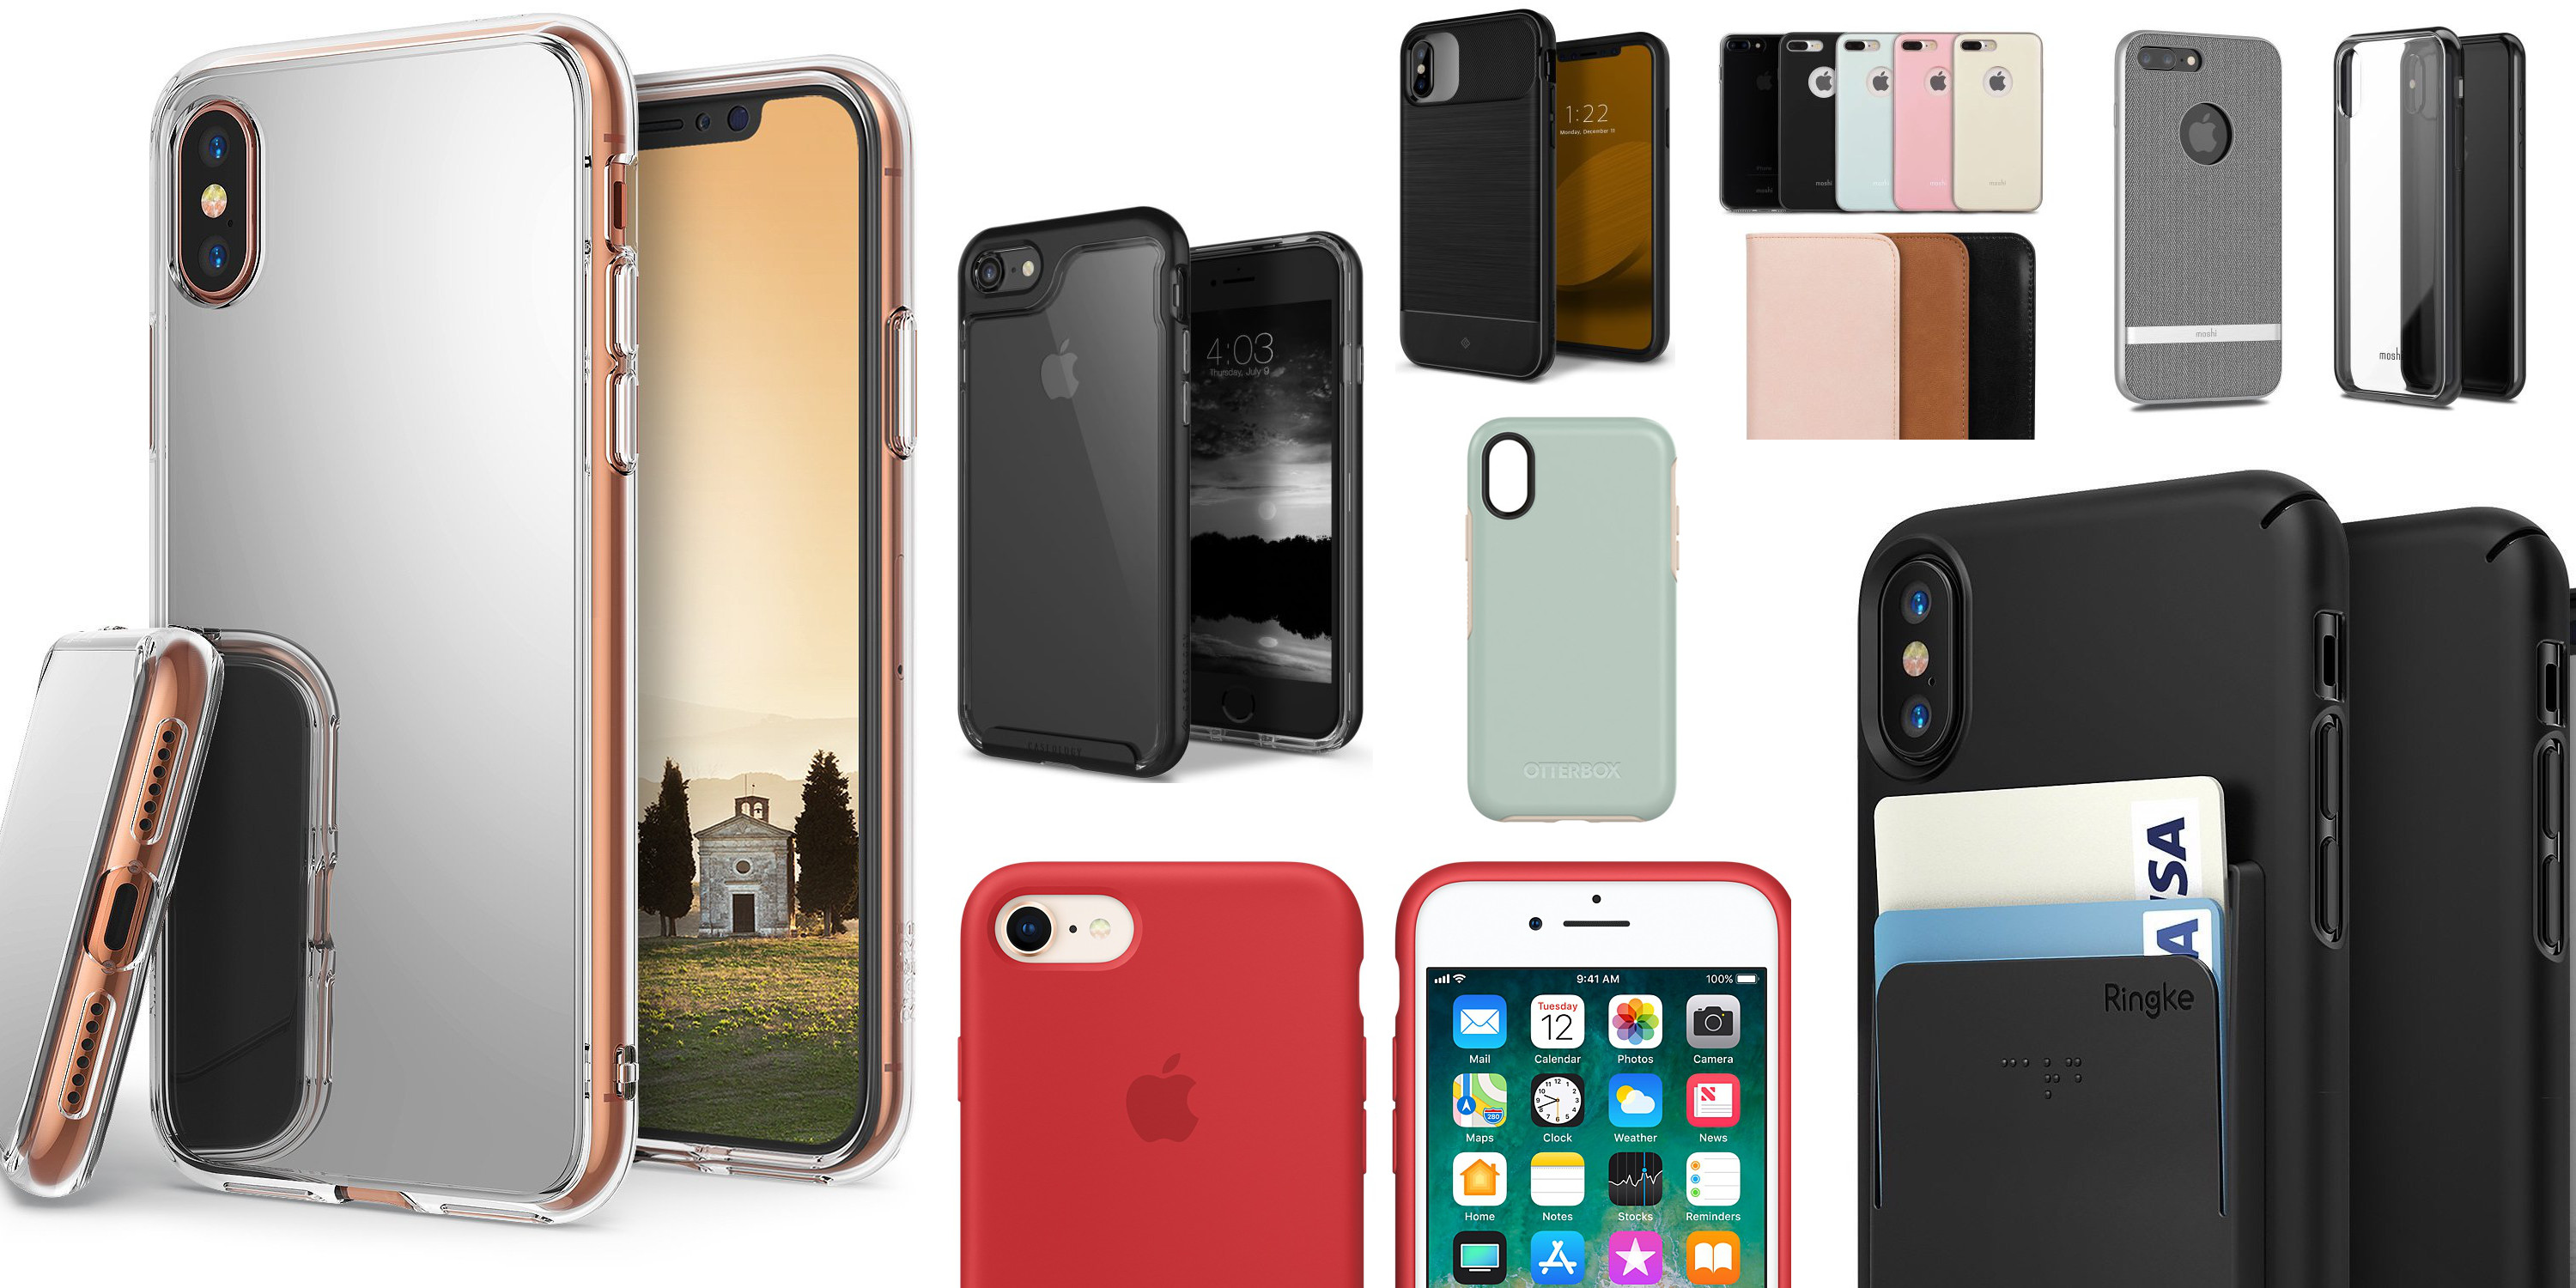 the best iphone 8 plus and x cases available now 9to5macthe best iphone 8 plus and x cases available now